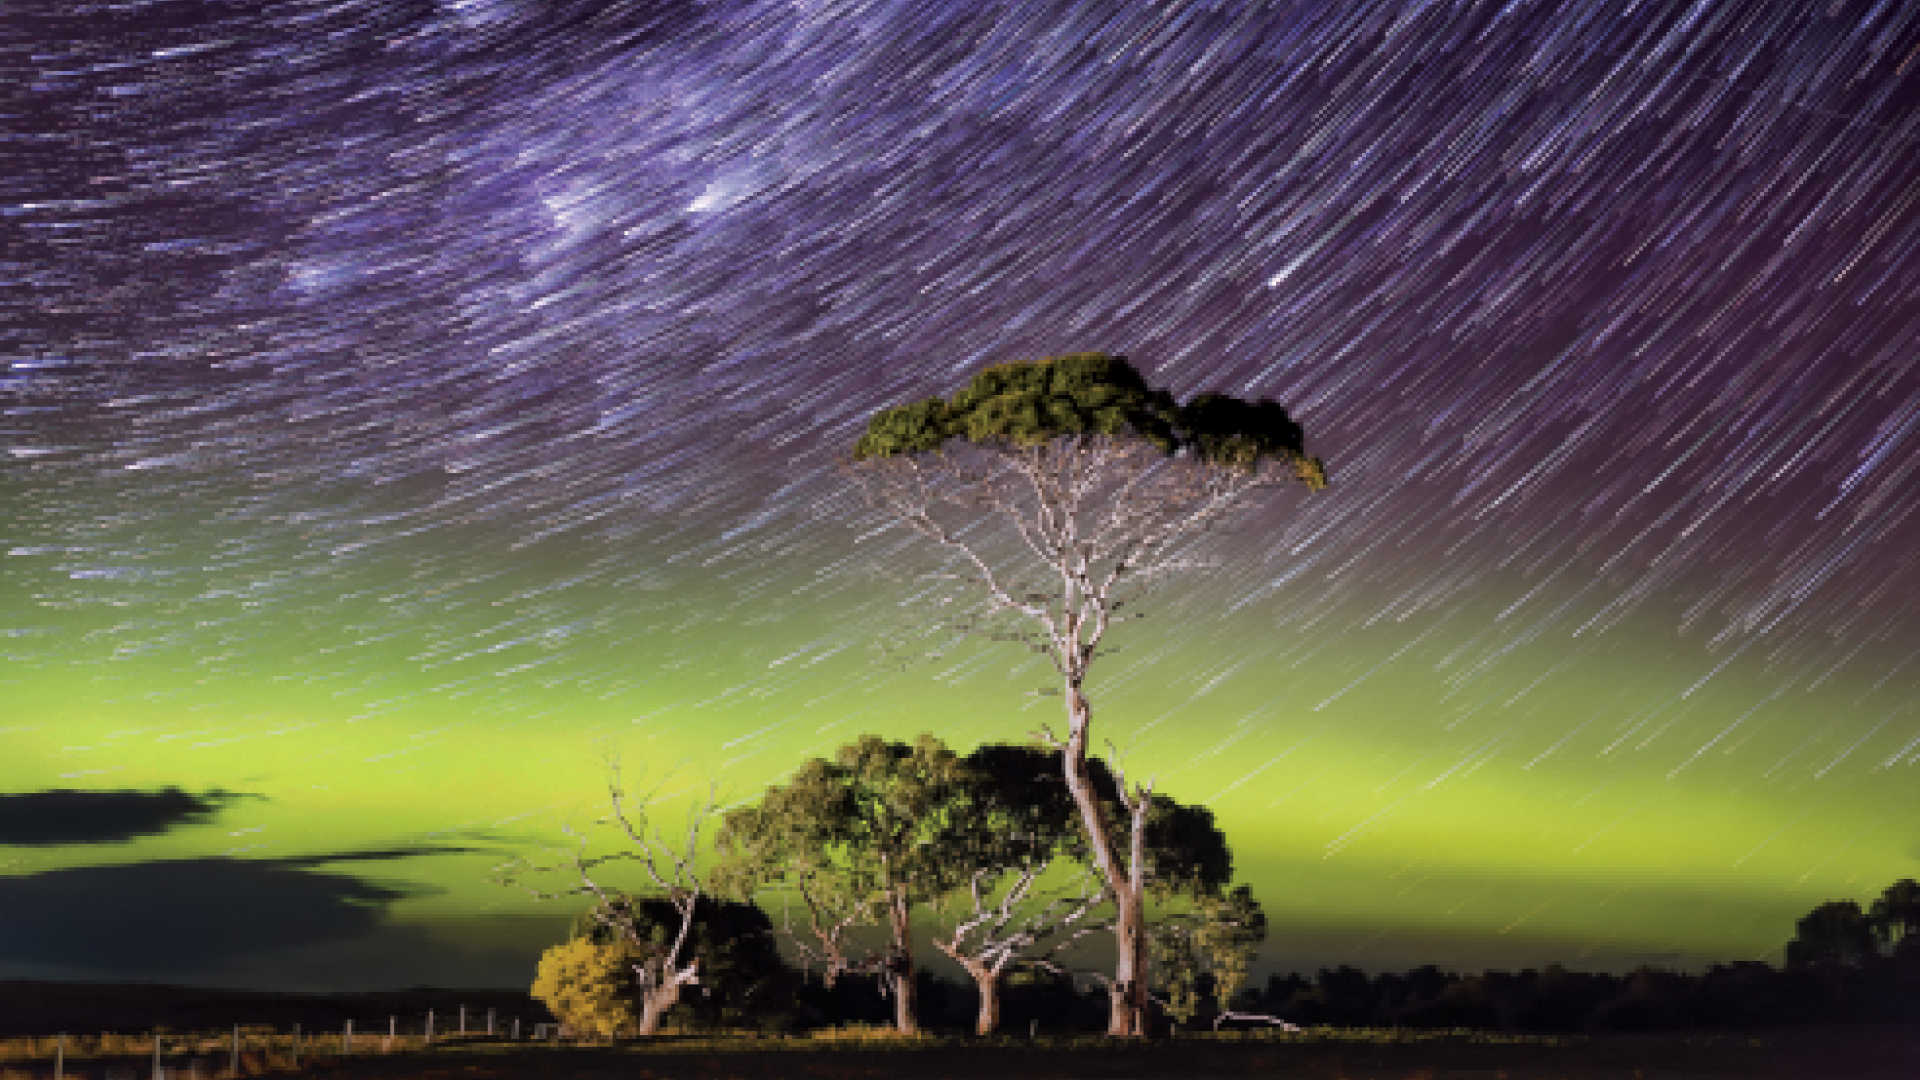 Star Trails over a bright green arc of aurora with an illuminated tree in the foreground Comet style star trail image with a bright green band of the Aurora Australis or Southern Lights arcing across the image with some illuminated trees in the foreground.